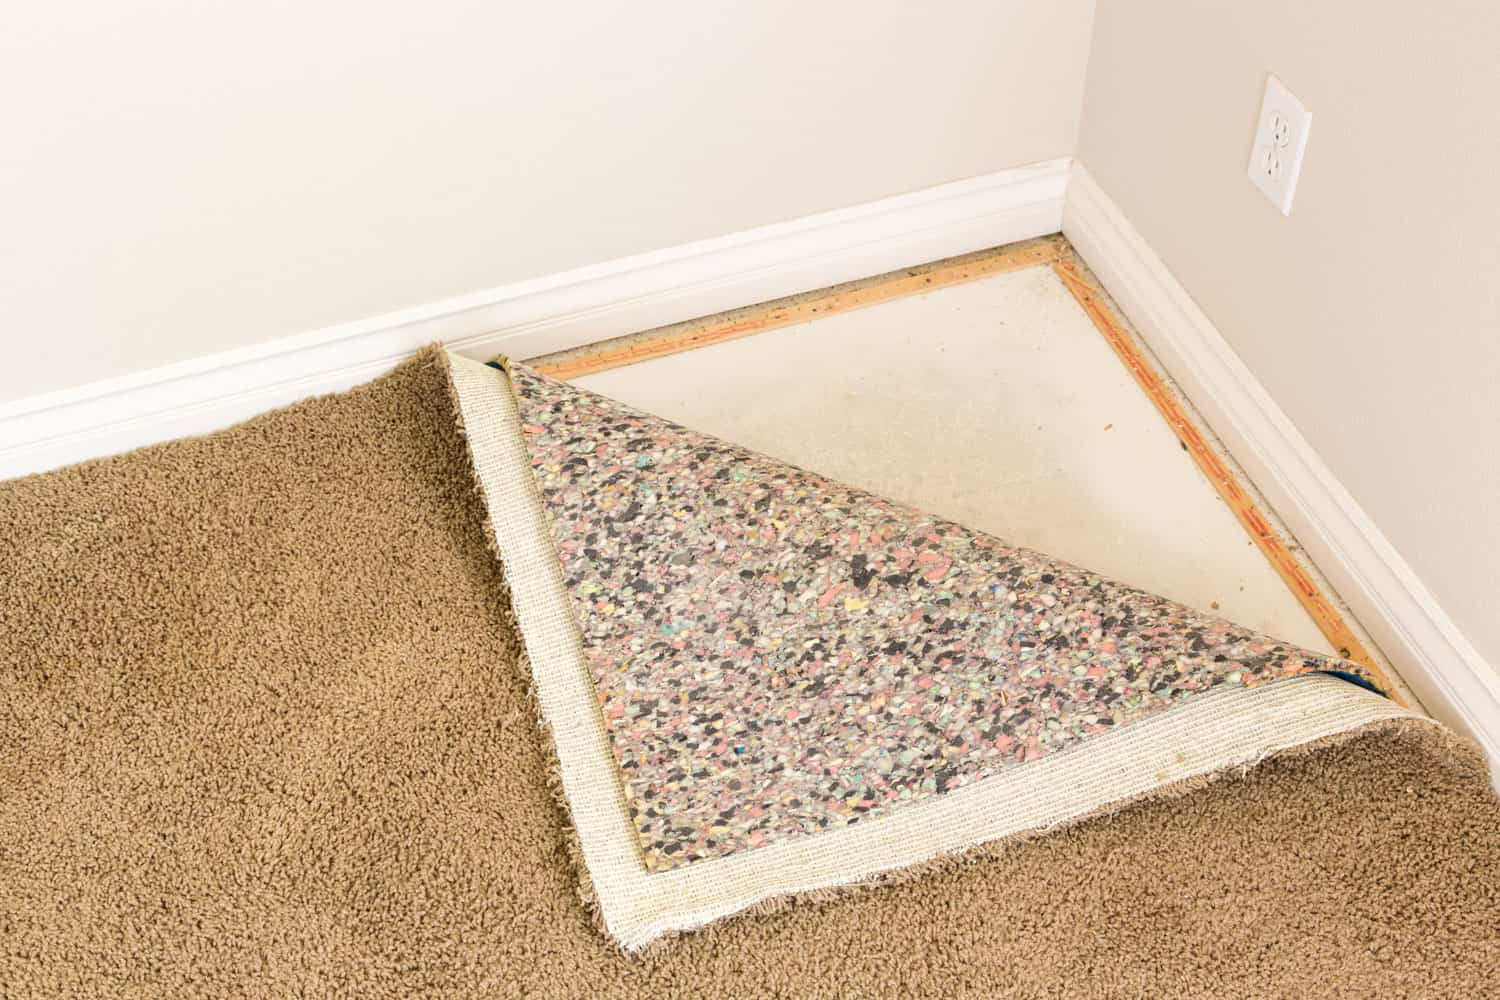 A photo of how carpet is installed on the corners of a house